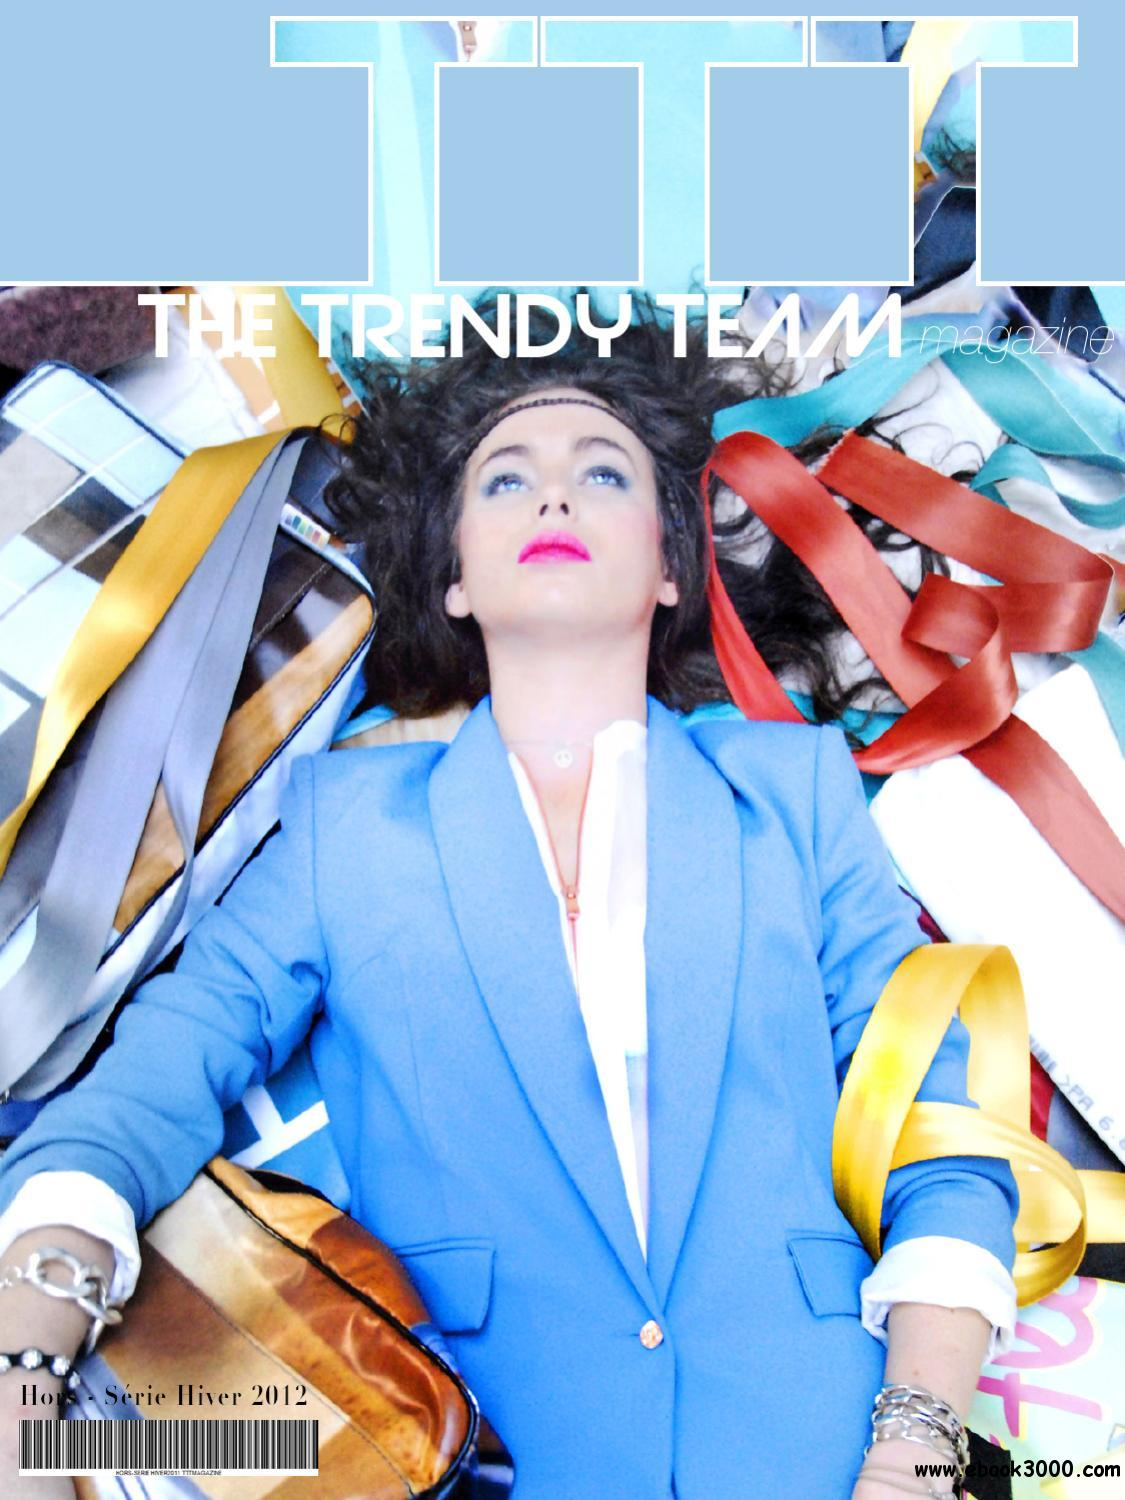 The Trendy Team - Hors Serie - Hiver 2012 free download